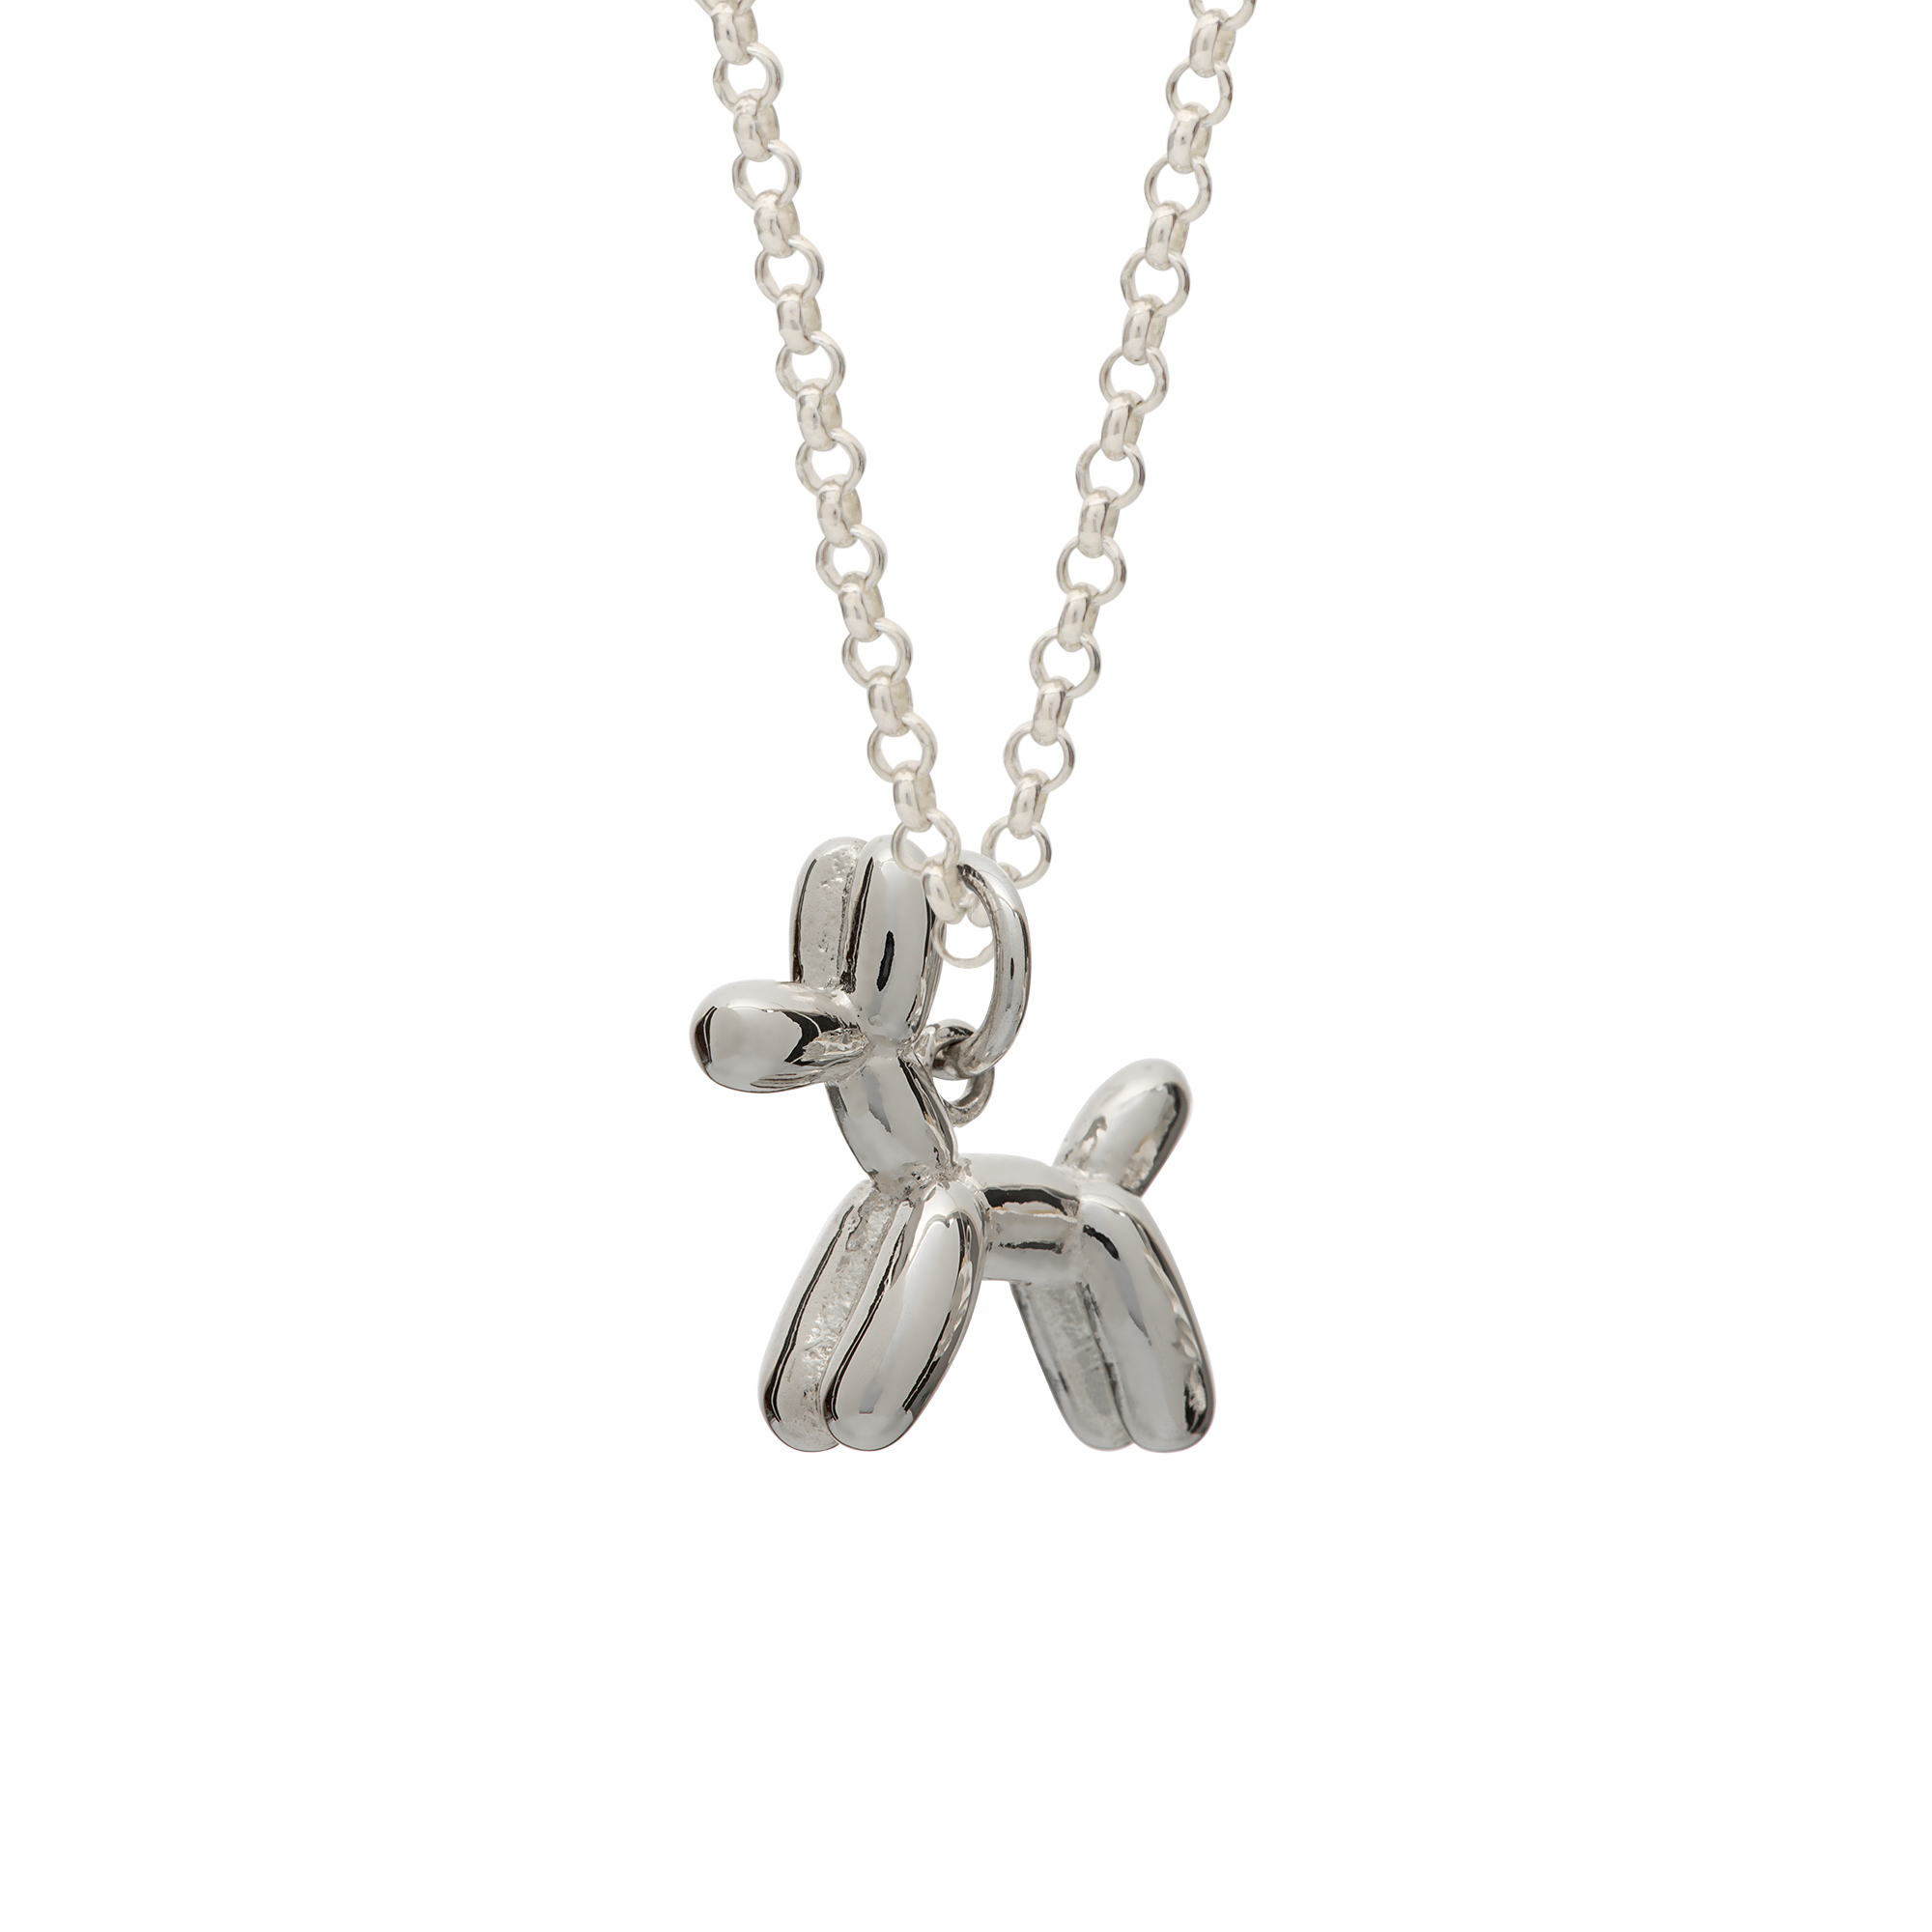 Balloon Dog Necklace by Lily Charmed